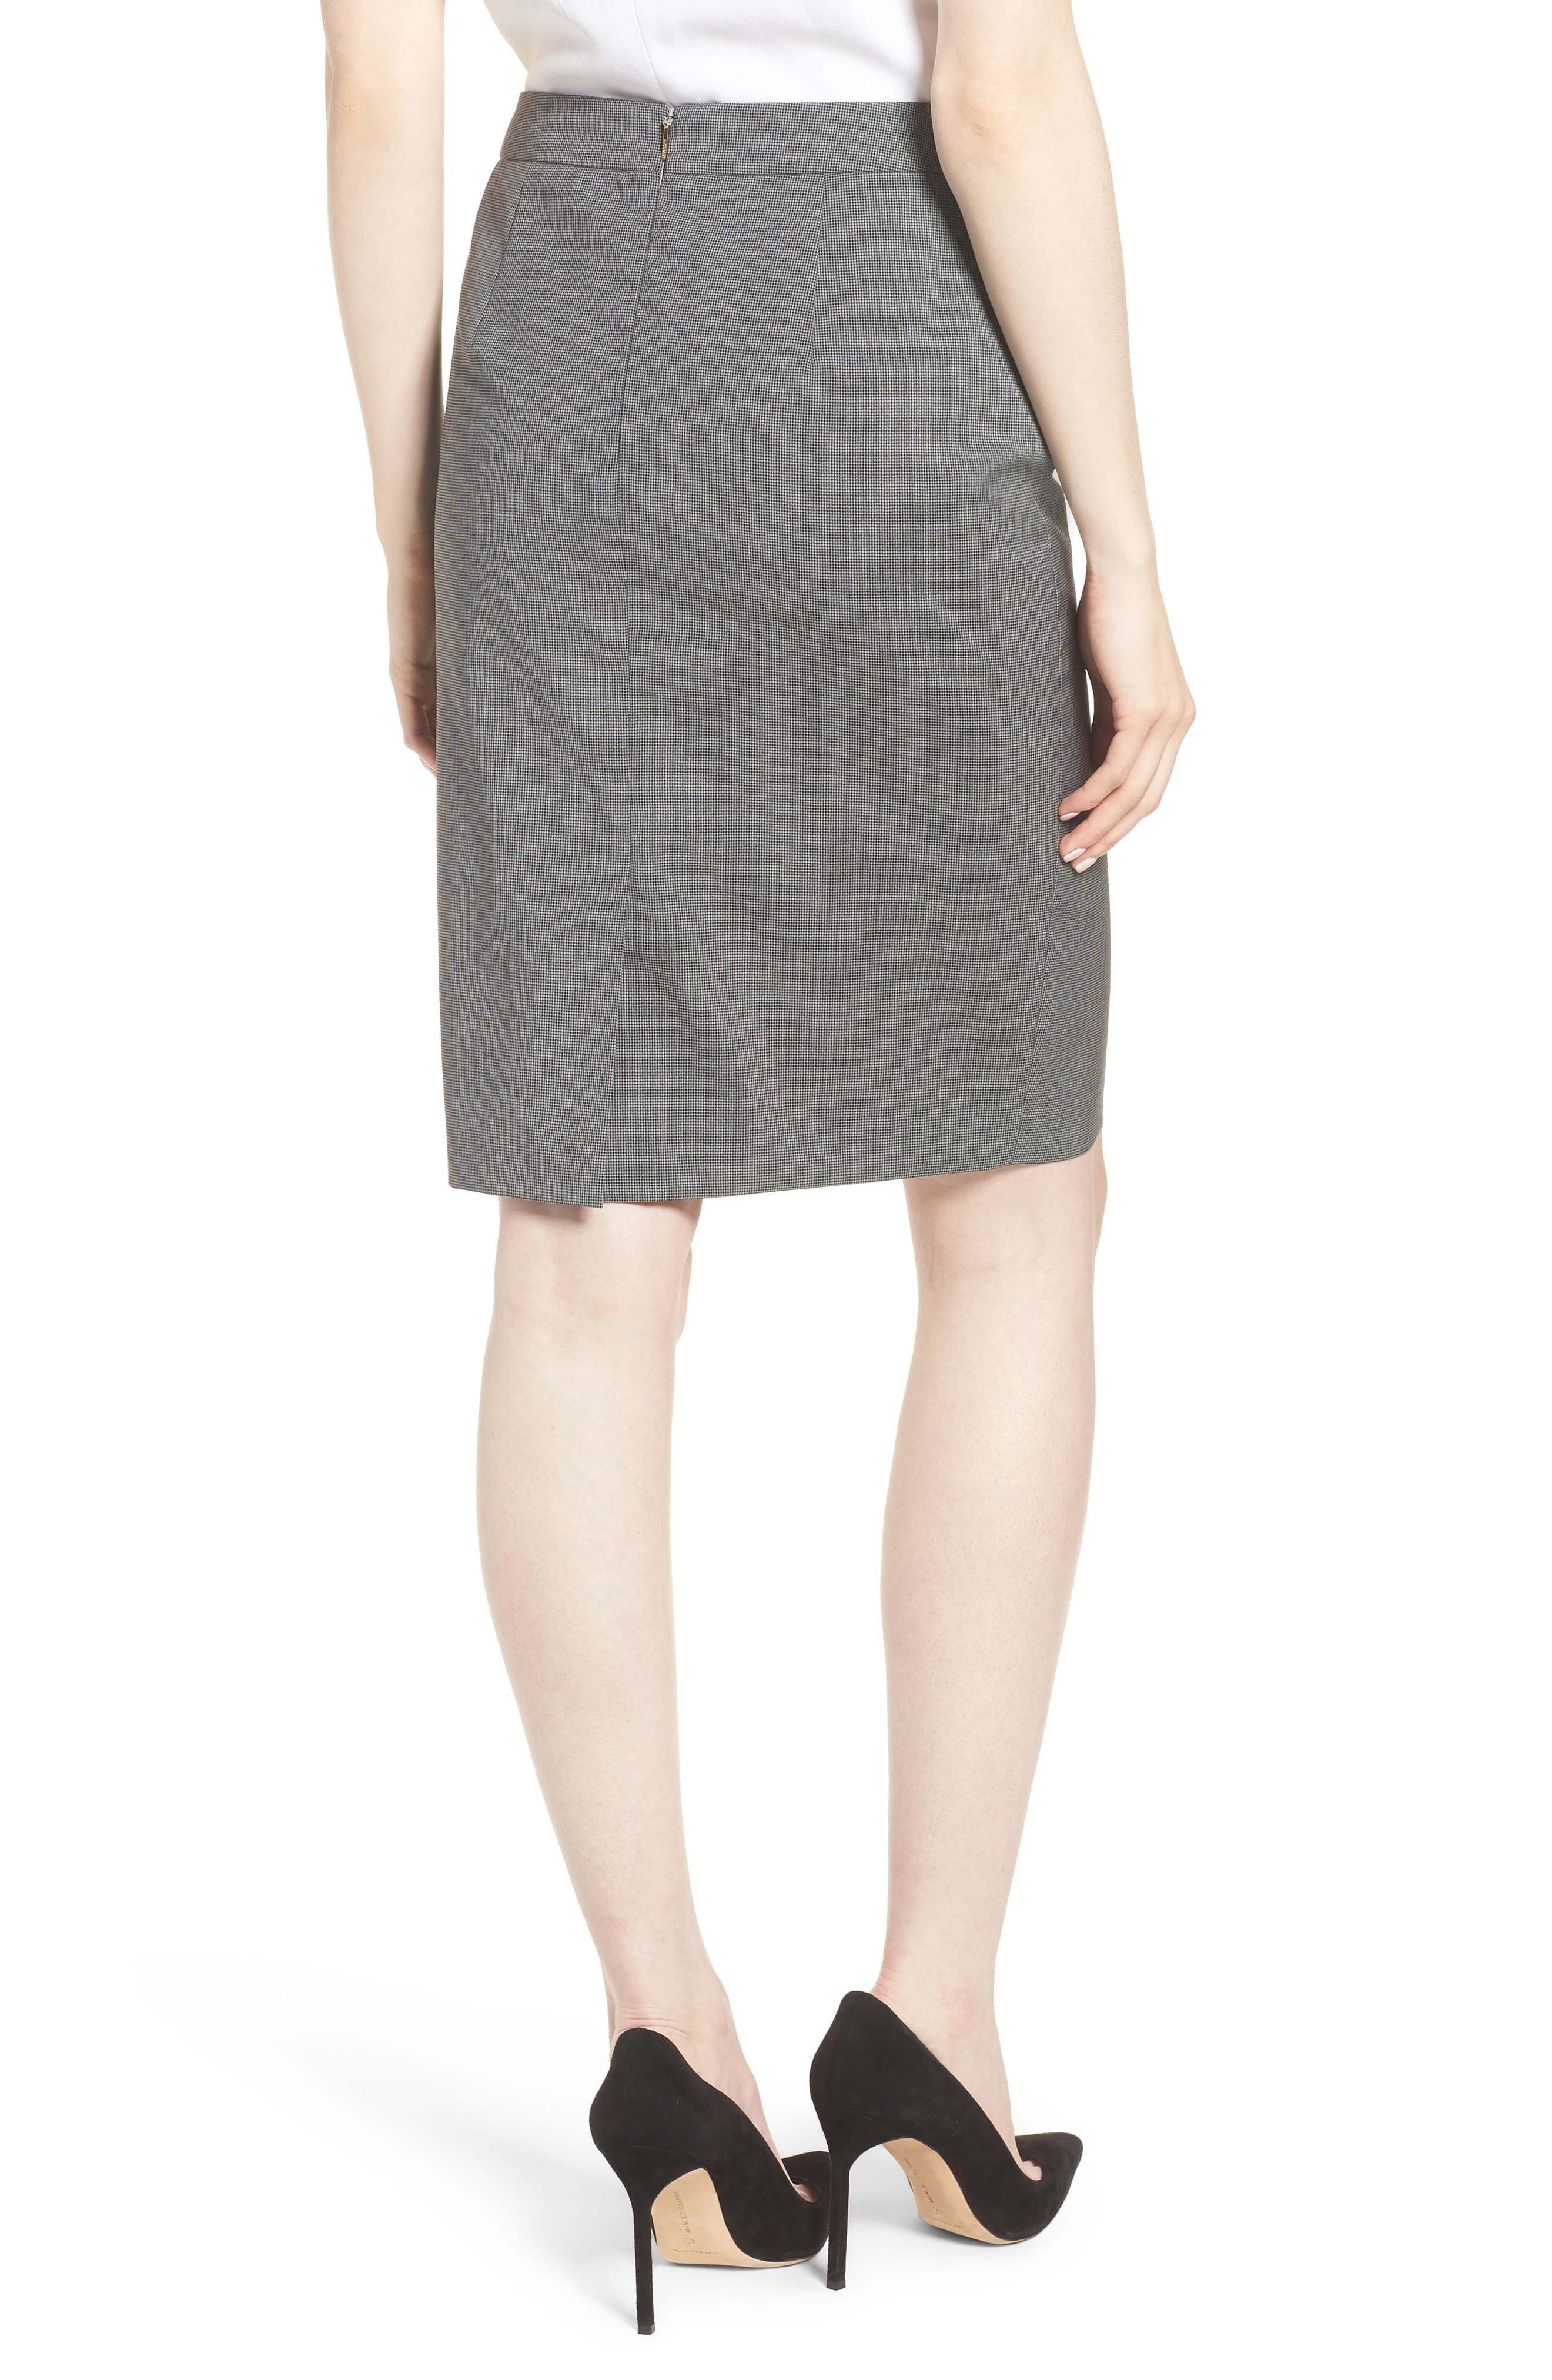 Vimena Mini Houndstooth Stretch Wool Pencil Skirt,                             Alternate thumbnail 2, color,                             060